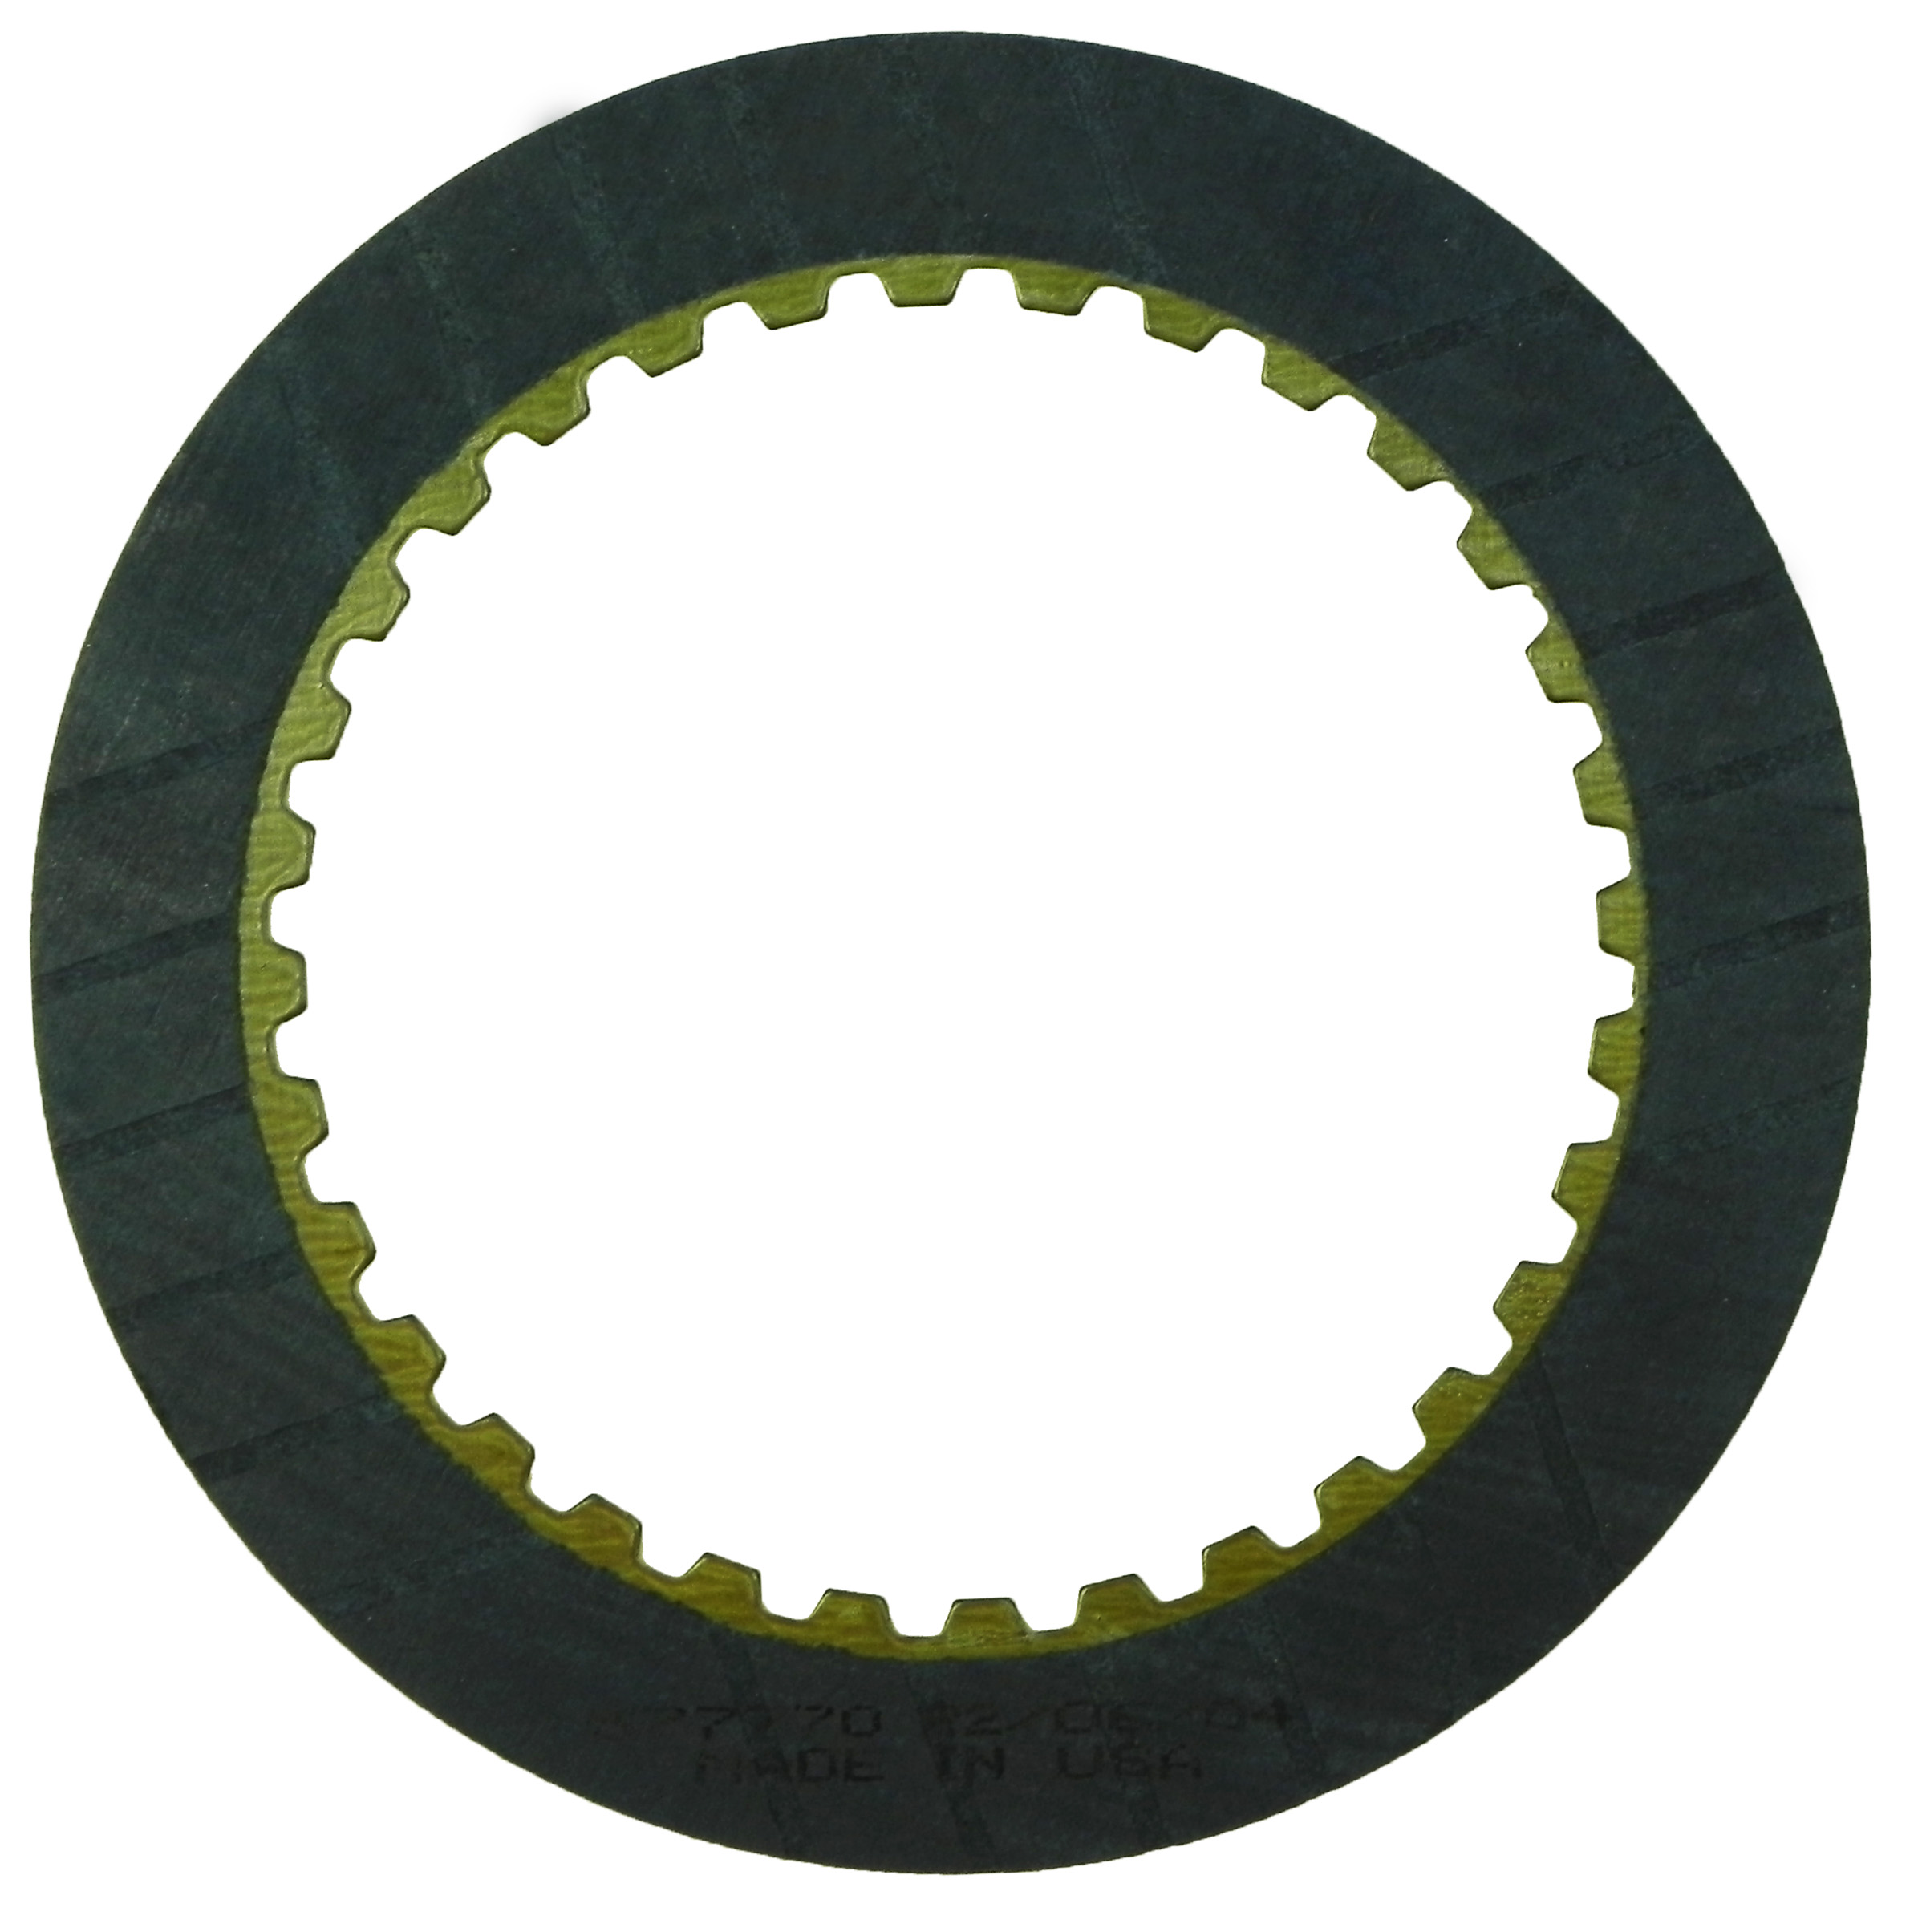 R577770 | 1995-2002 Friction Clutch Plate GEN 2, Blue Plate Special Input GEN 2, Race Product